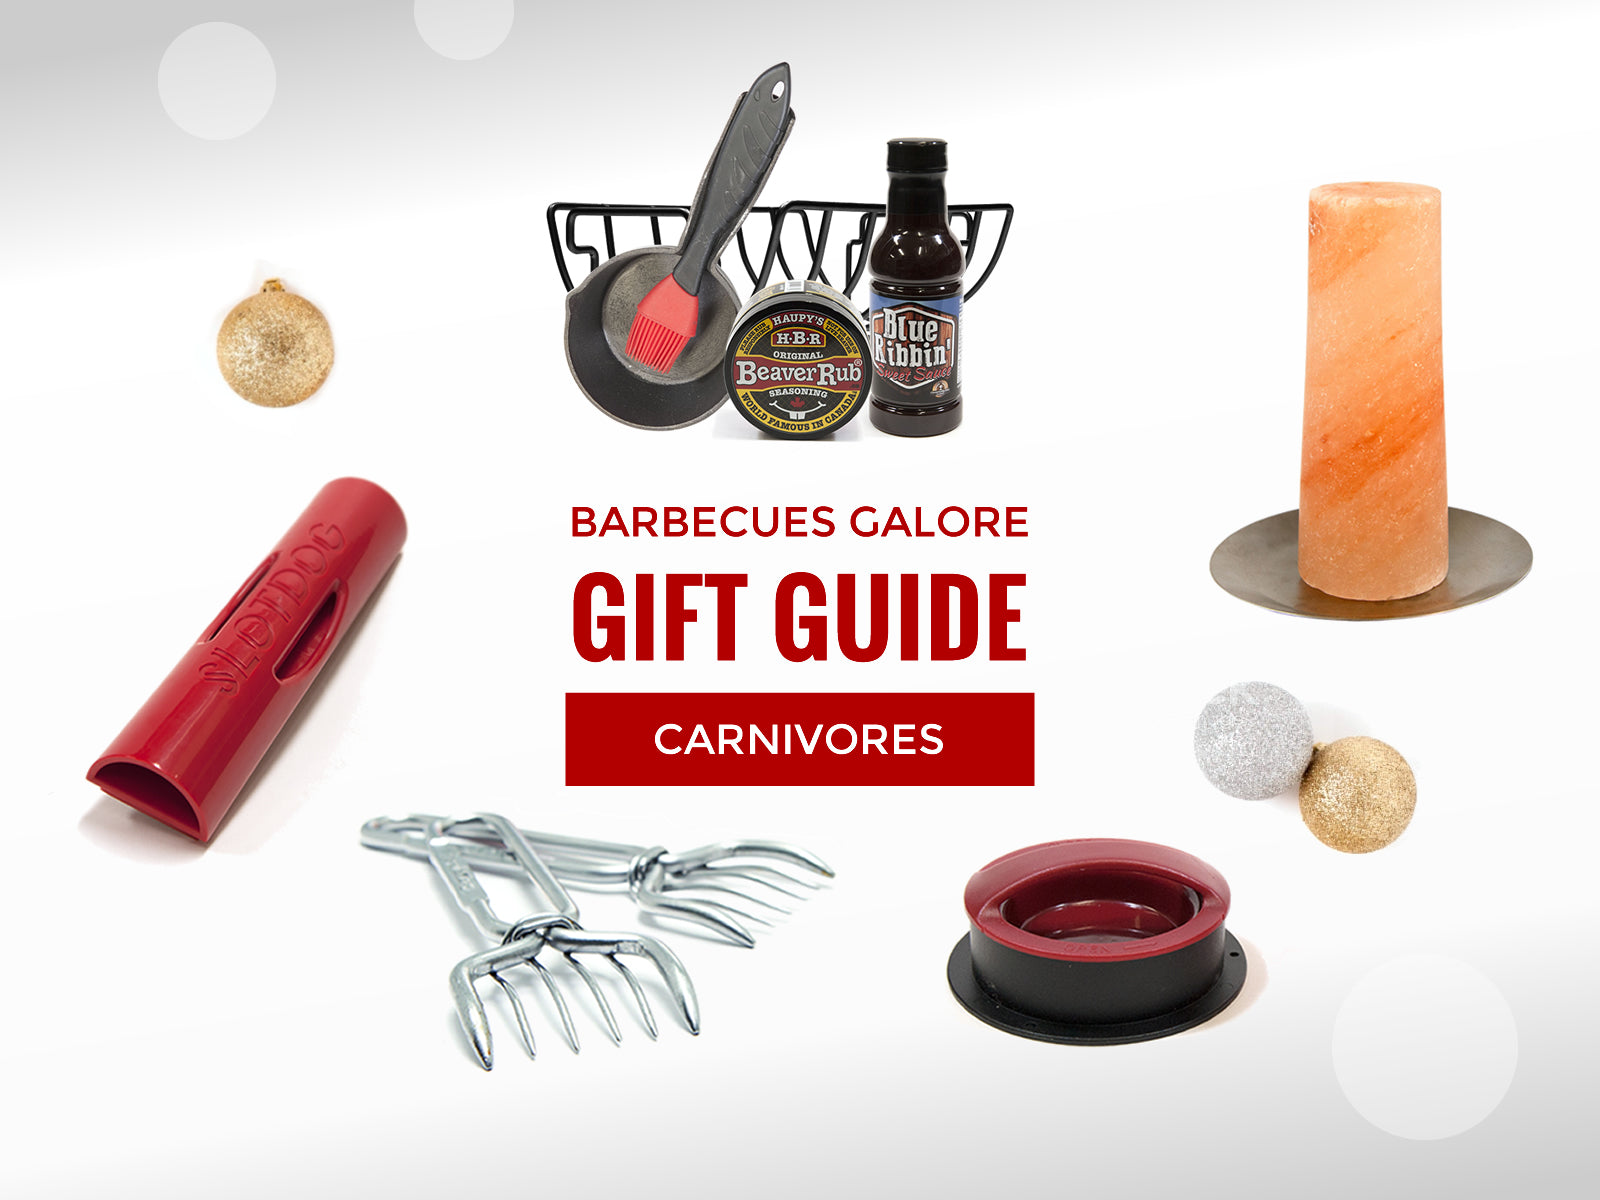 Barbecues Galore Gift Guide - Grilling Gifts For Meat Lovers